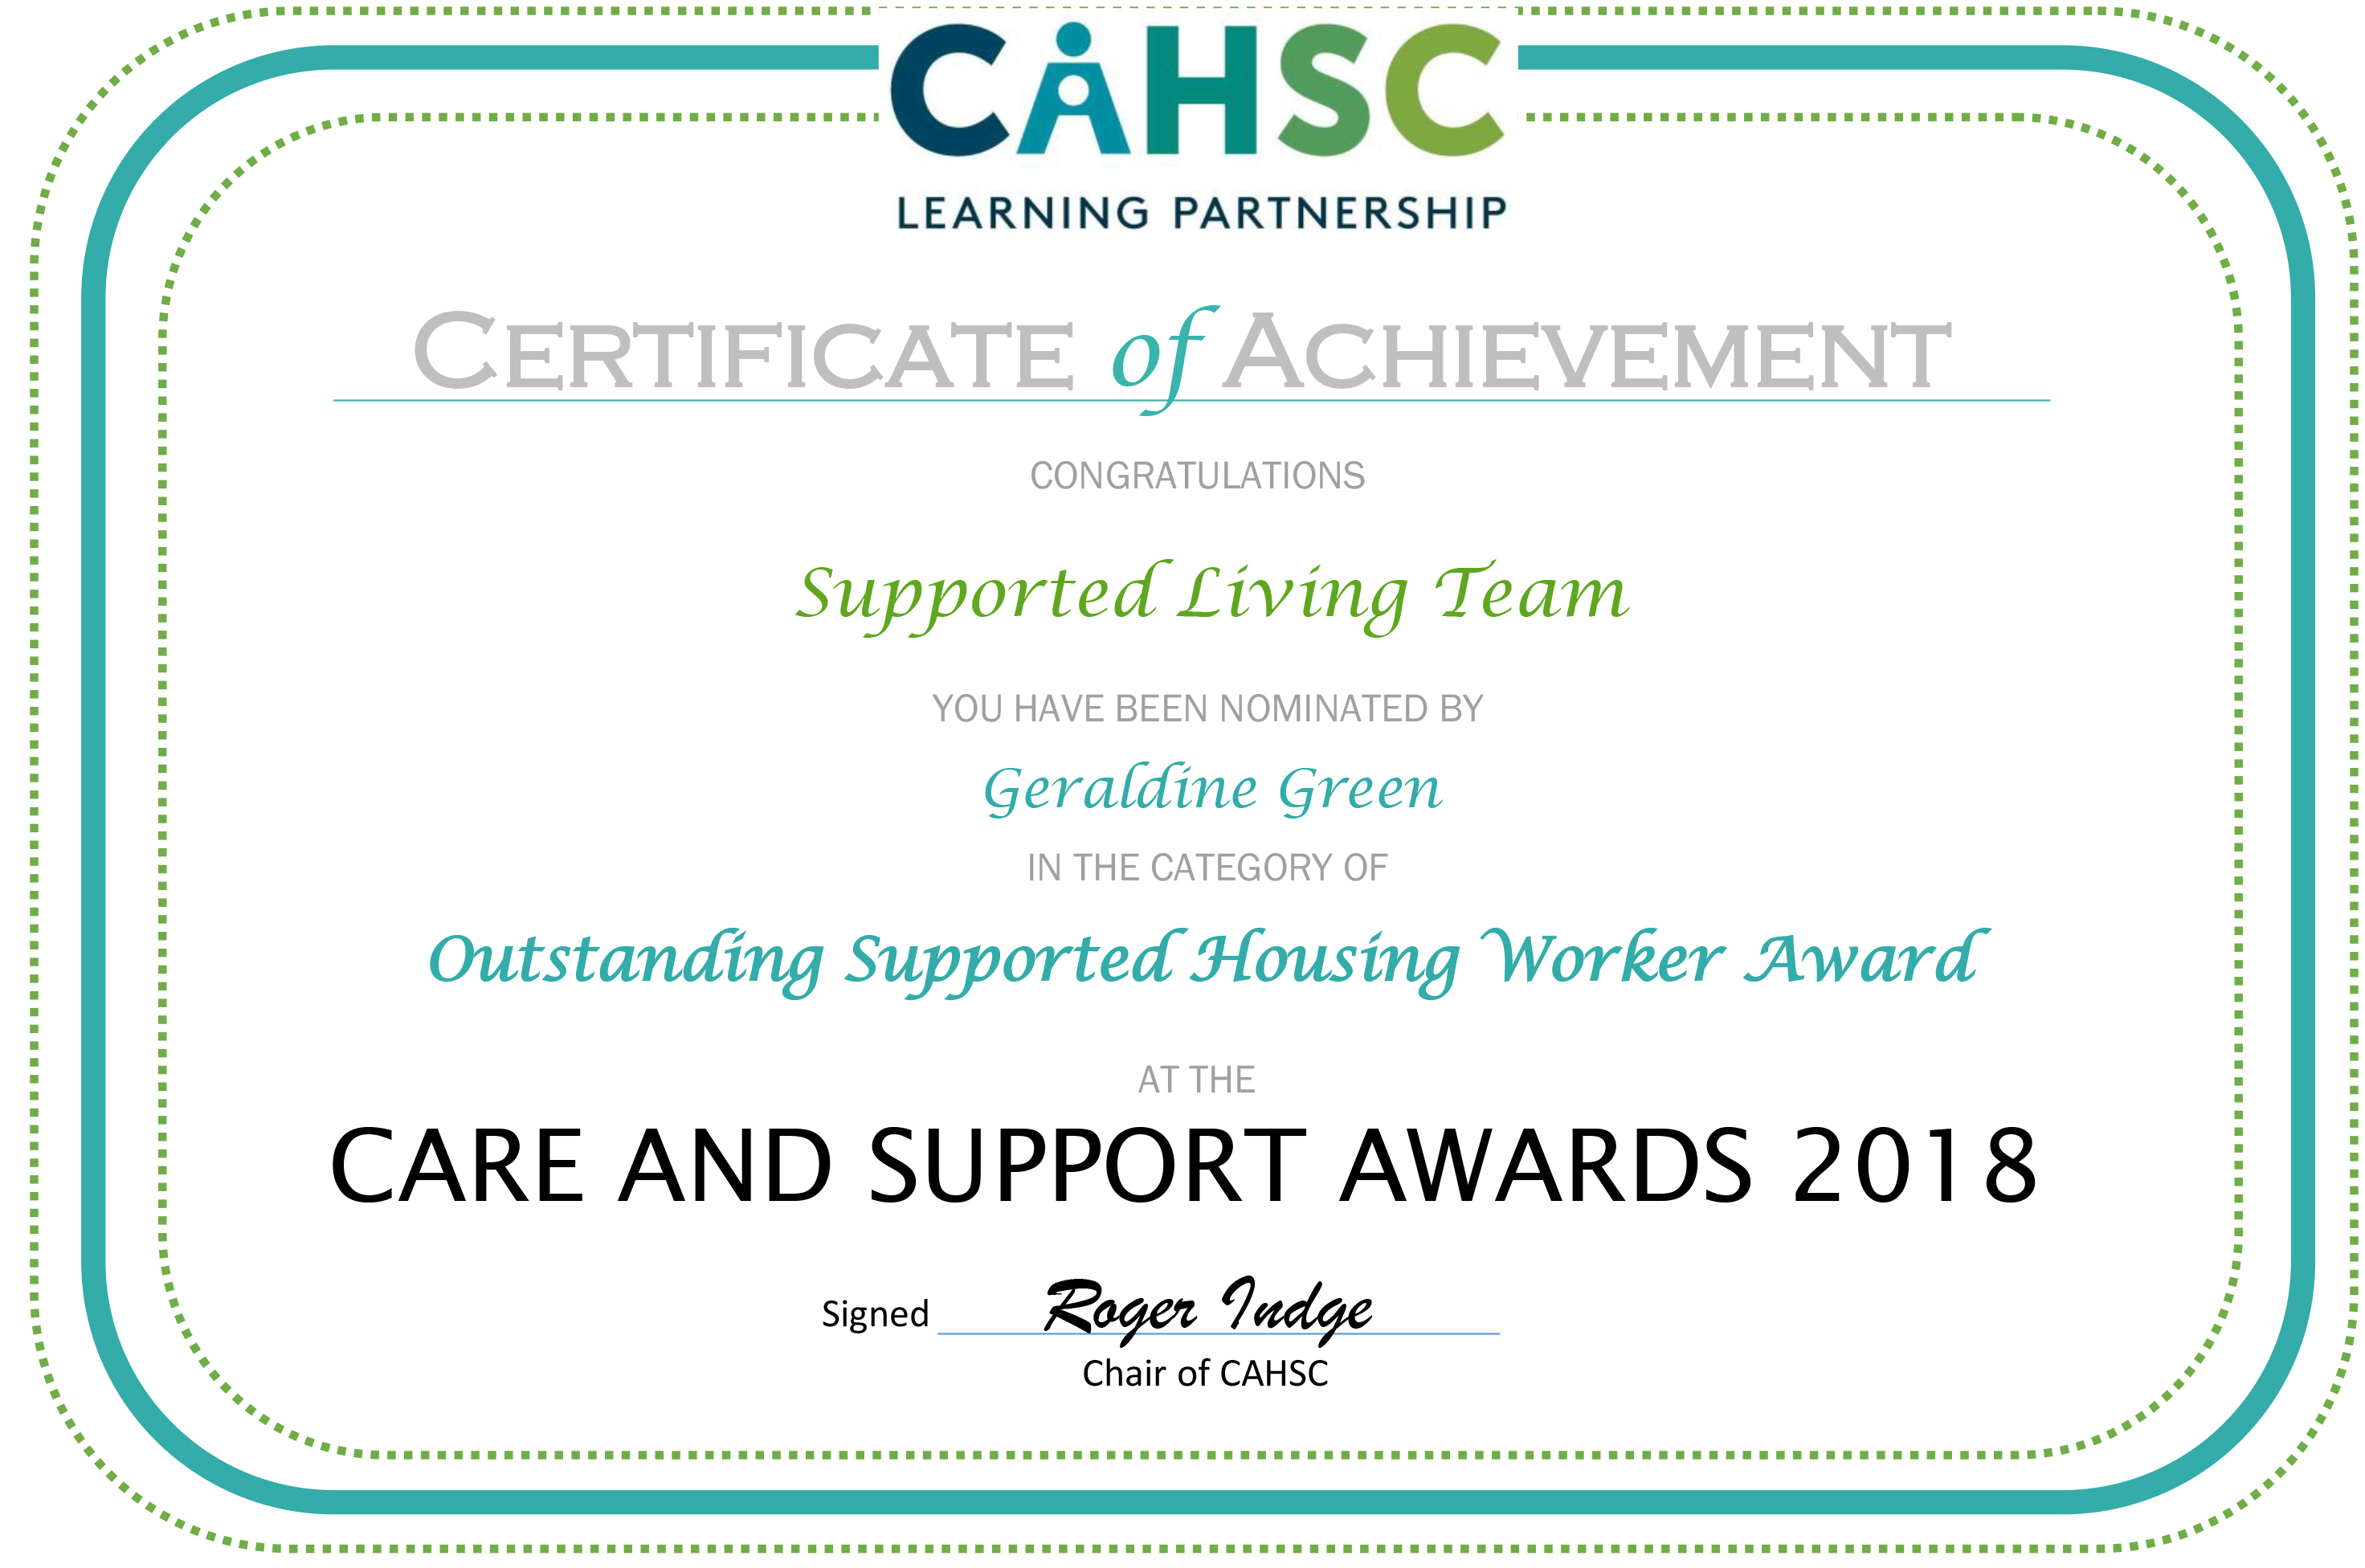 Care Awards Certificate - Supported Living Team.jpg